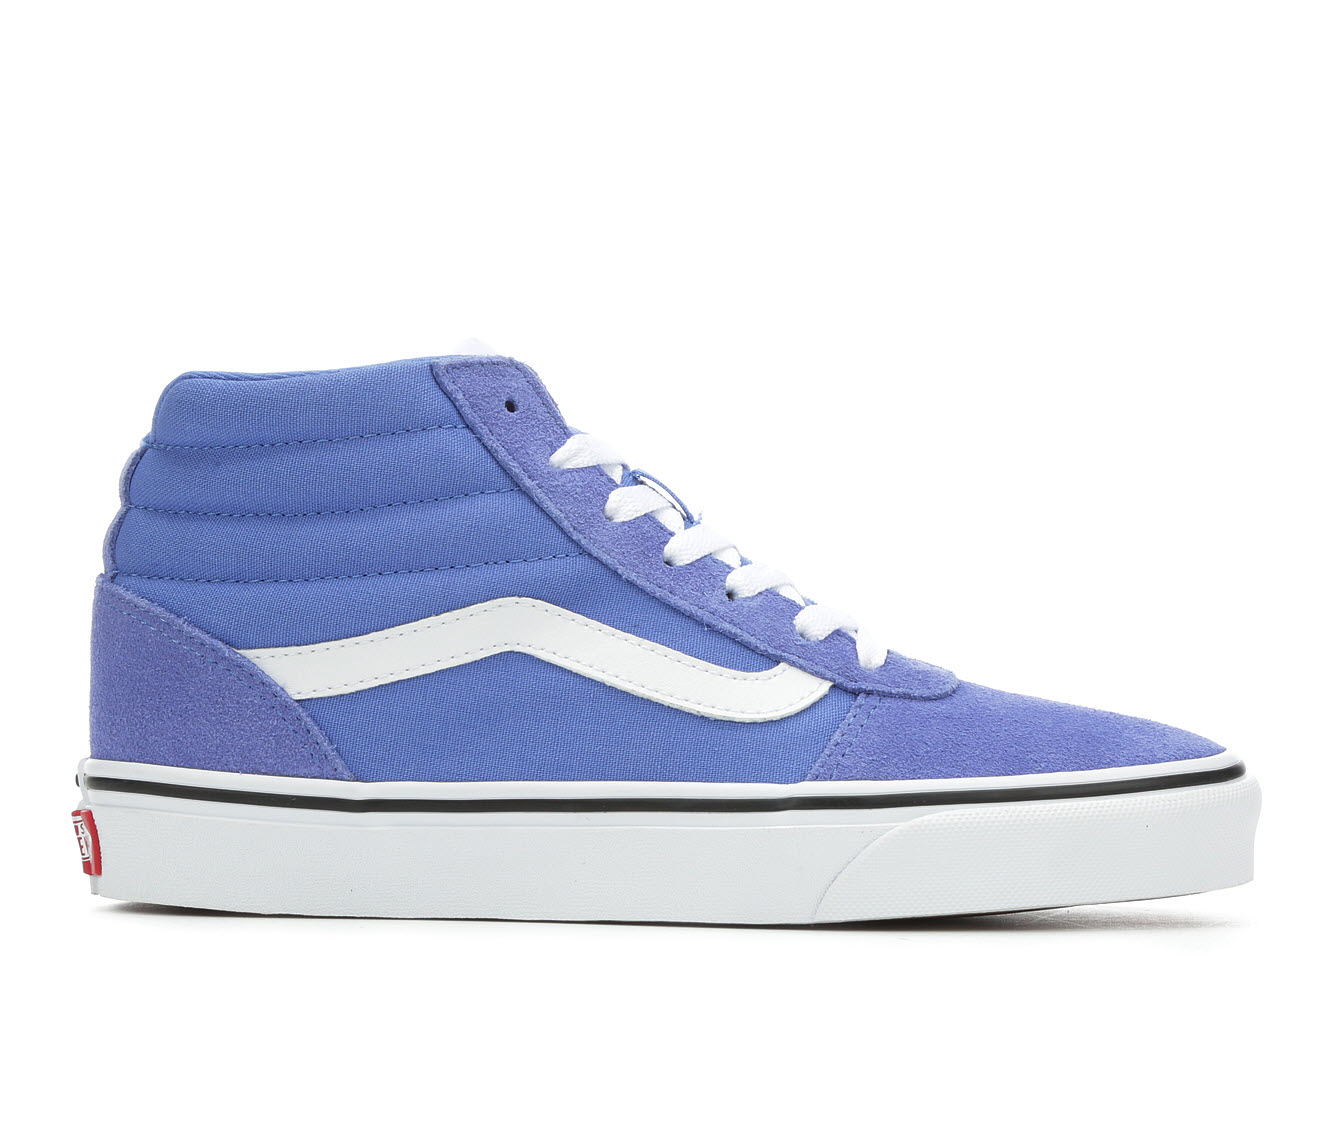 Vans Ward Hi Women's Athletic Shoe (Blue)